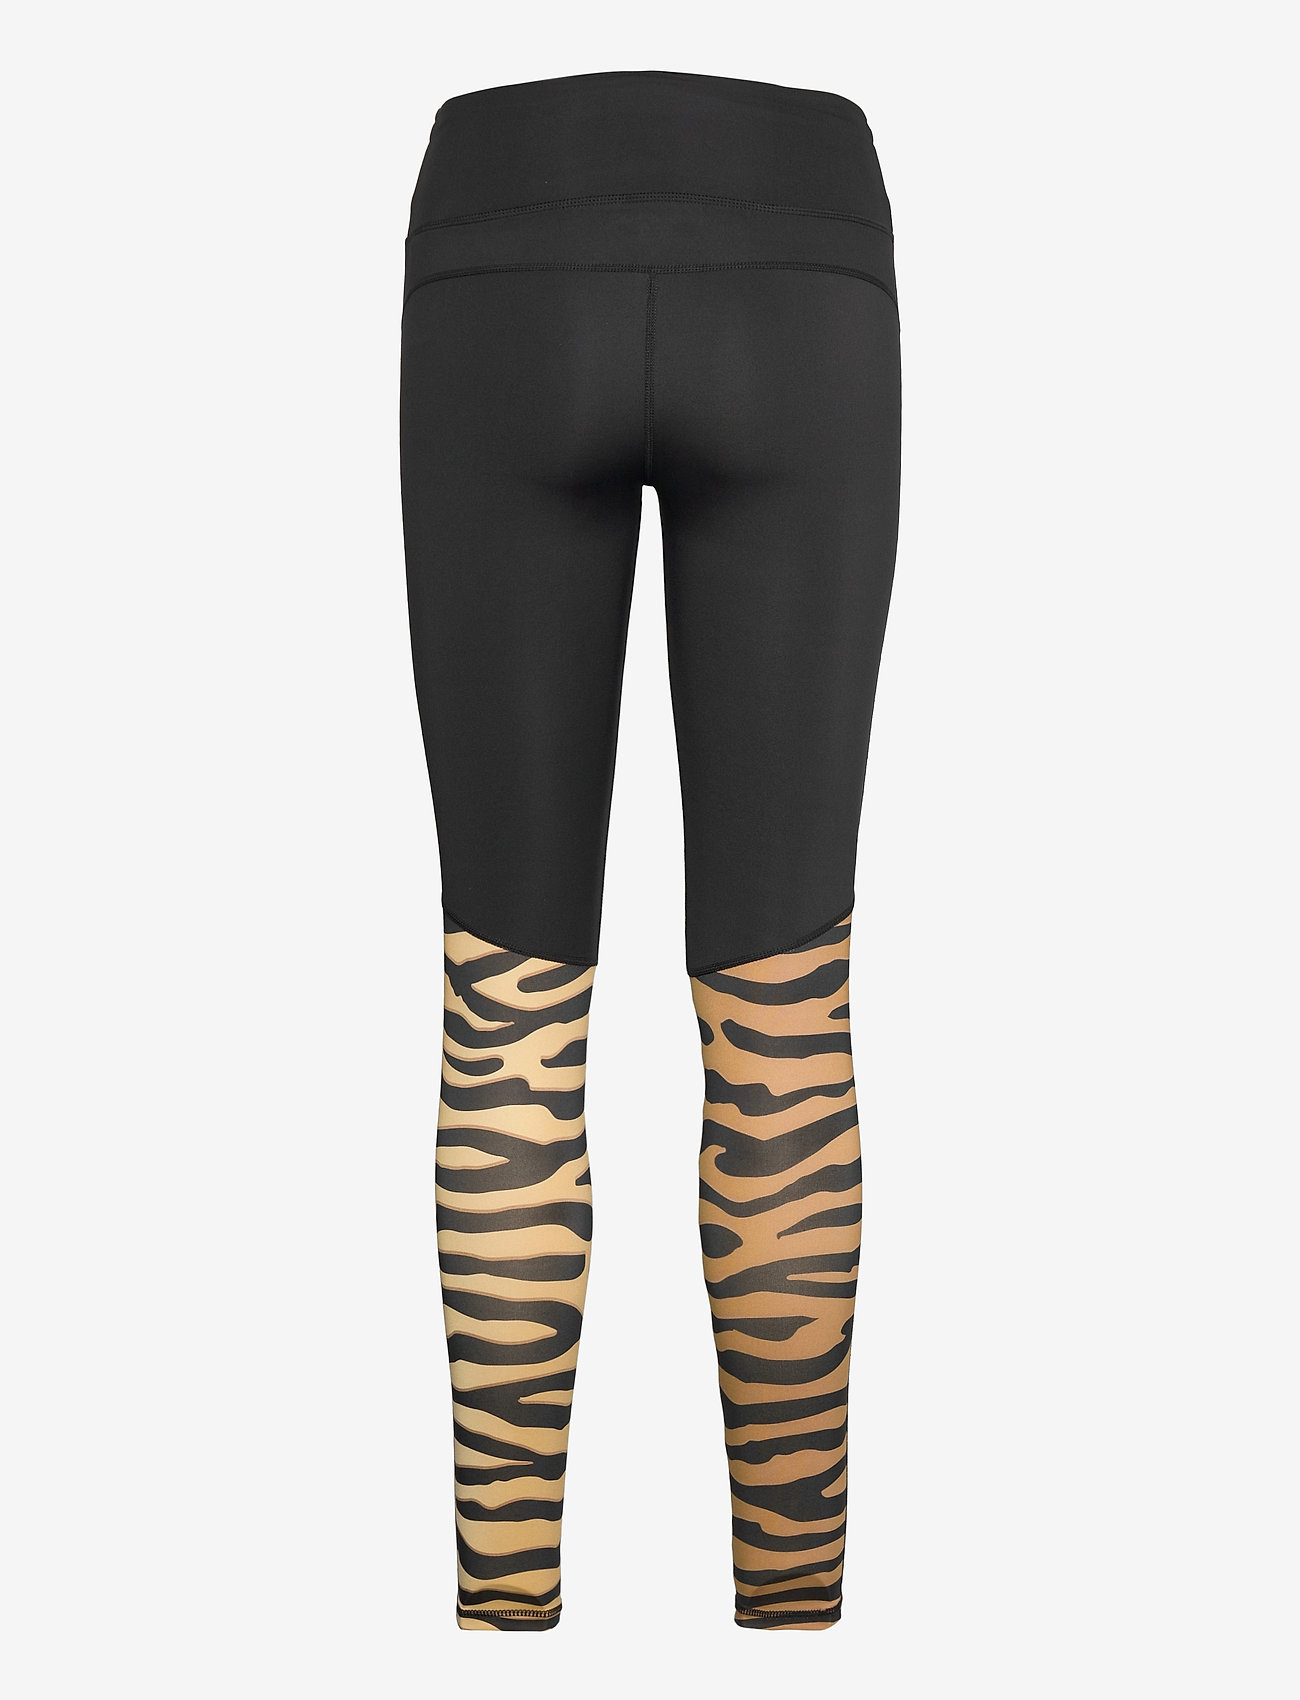 Björn Borg - TIGHTS CLARENCE CLARENCE - running & training tights - bb tiger - 1